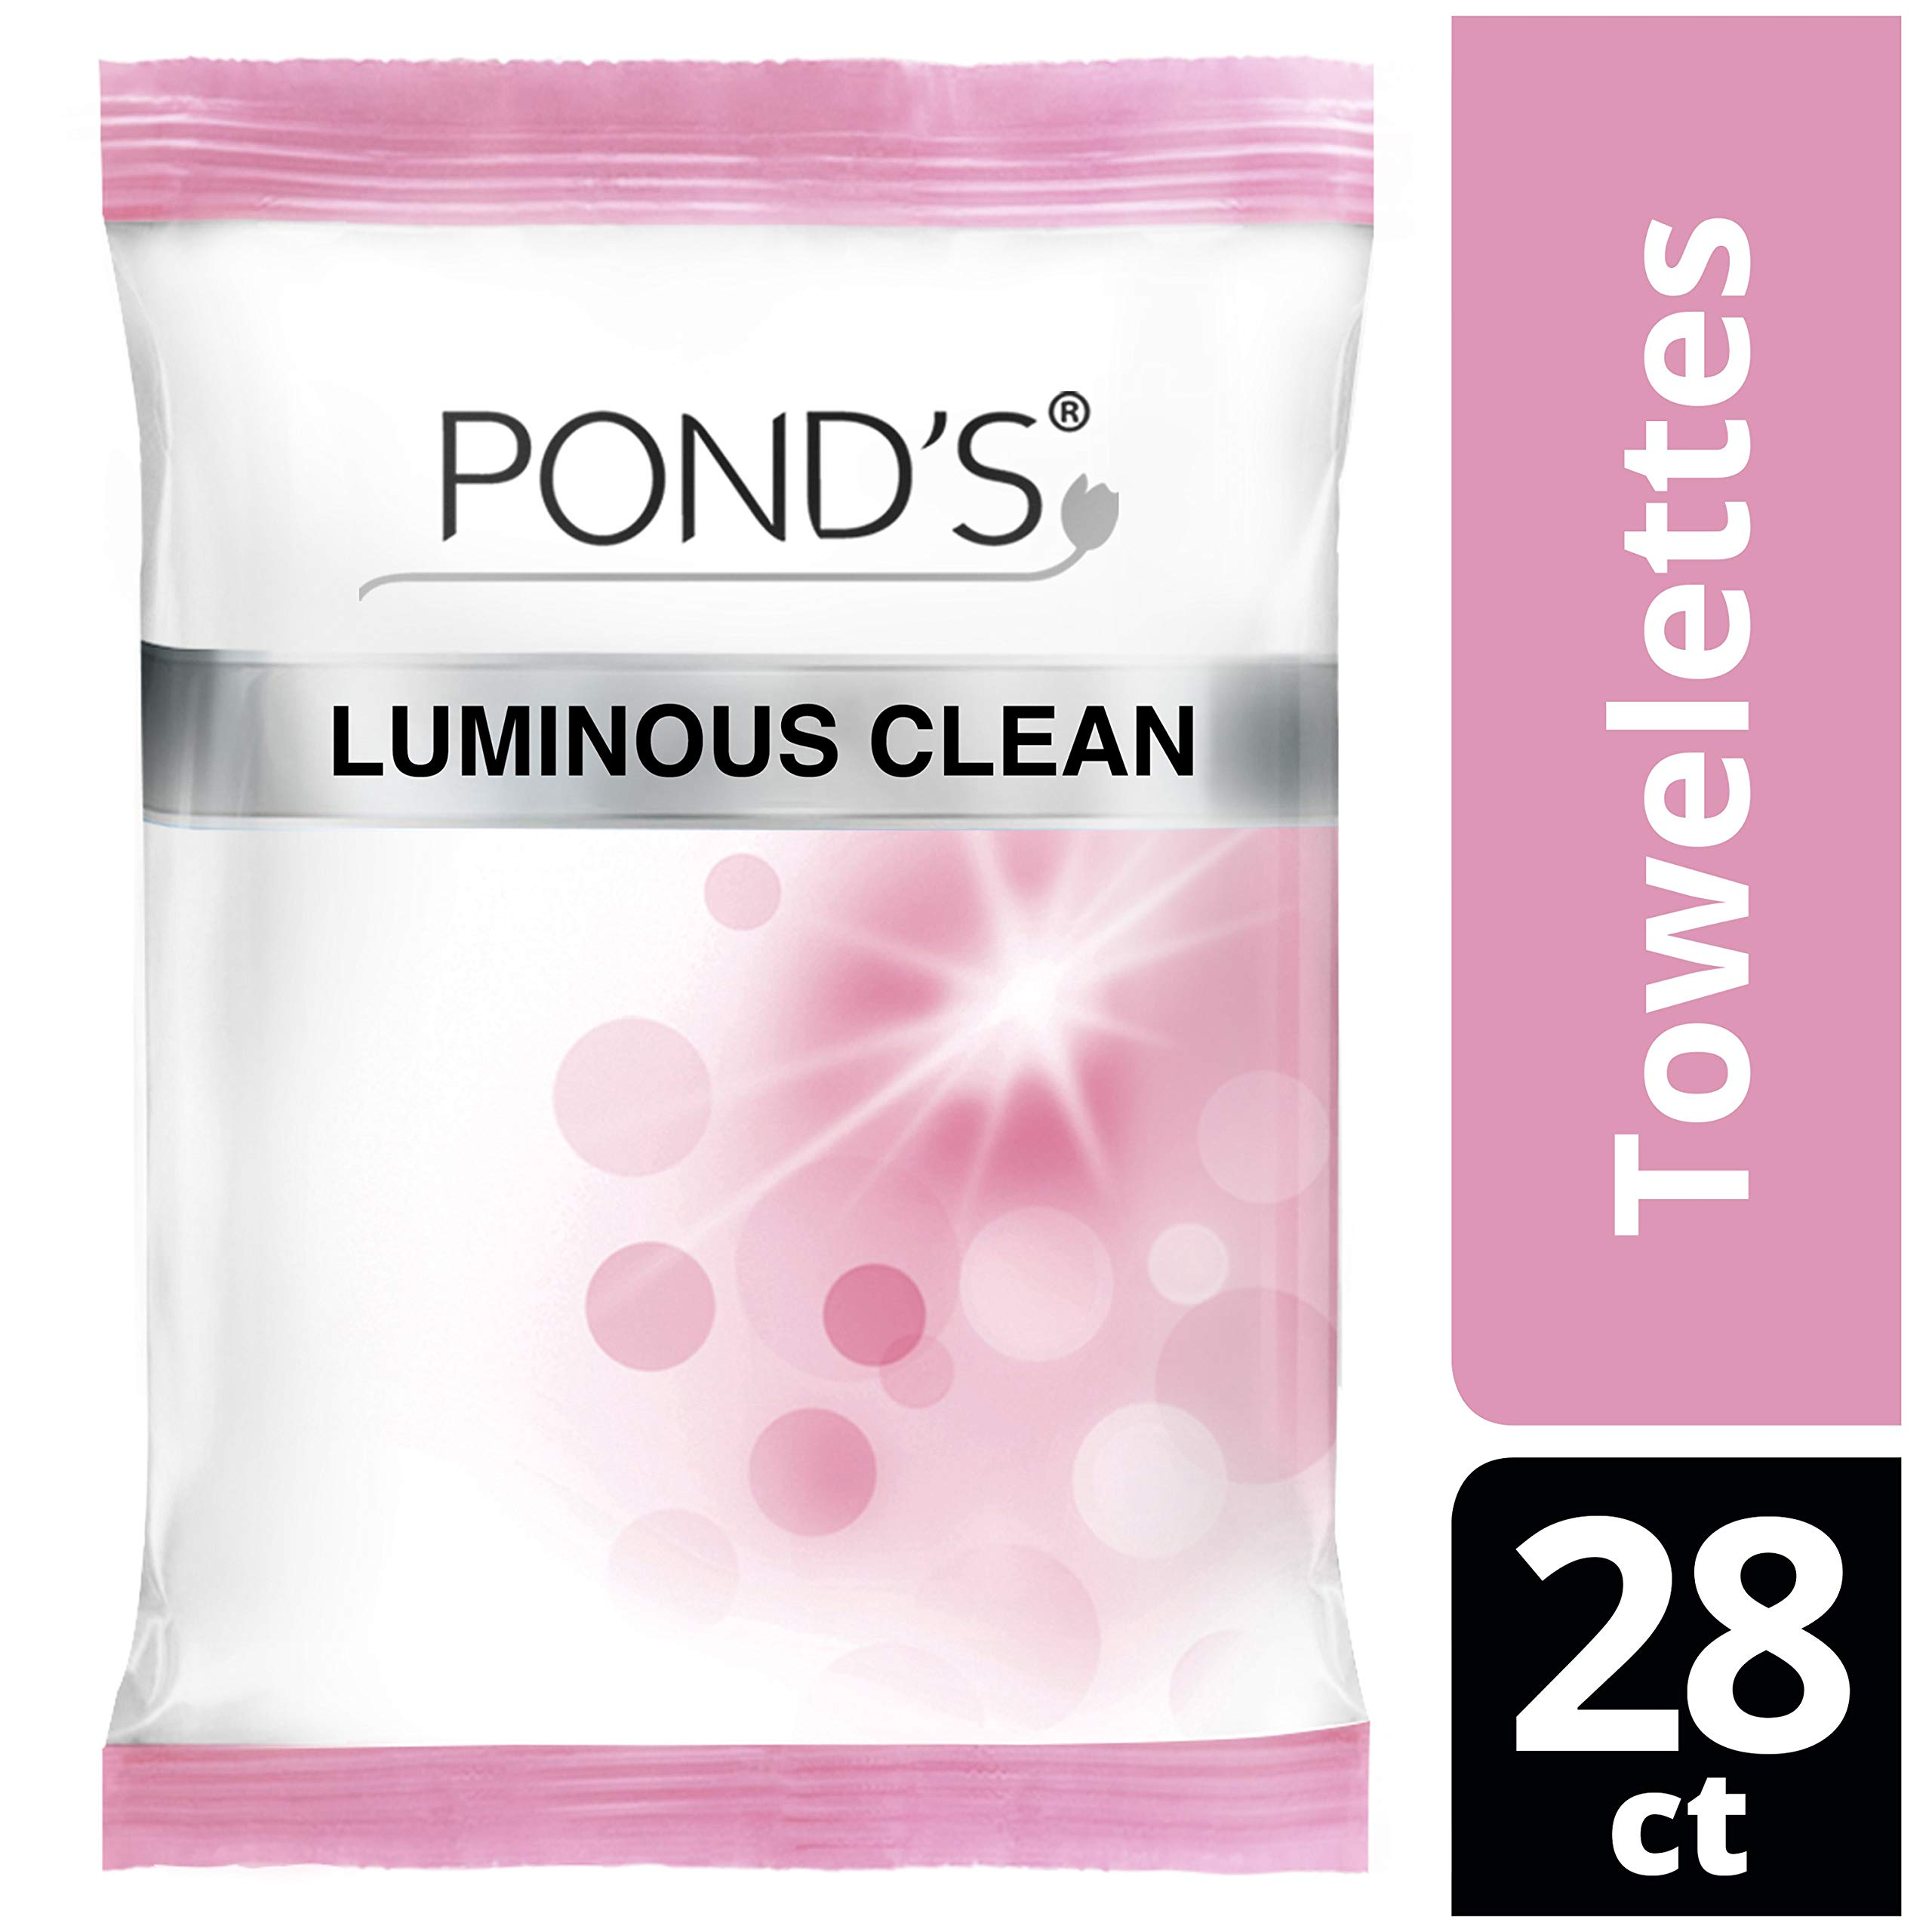 Ponds Moisture Clean Towelettes, Luminous Clean, ...